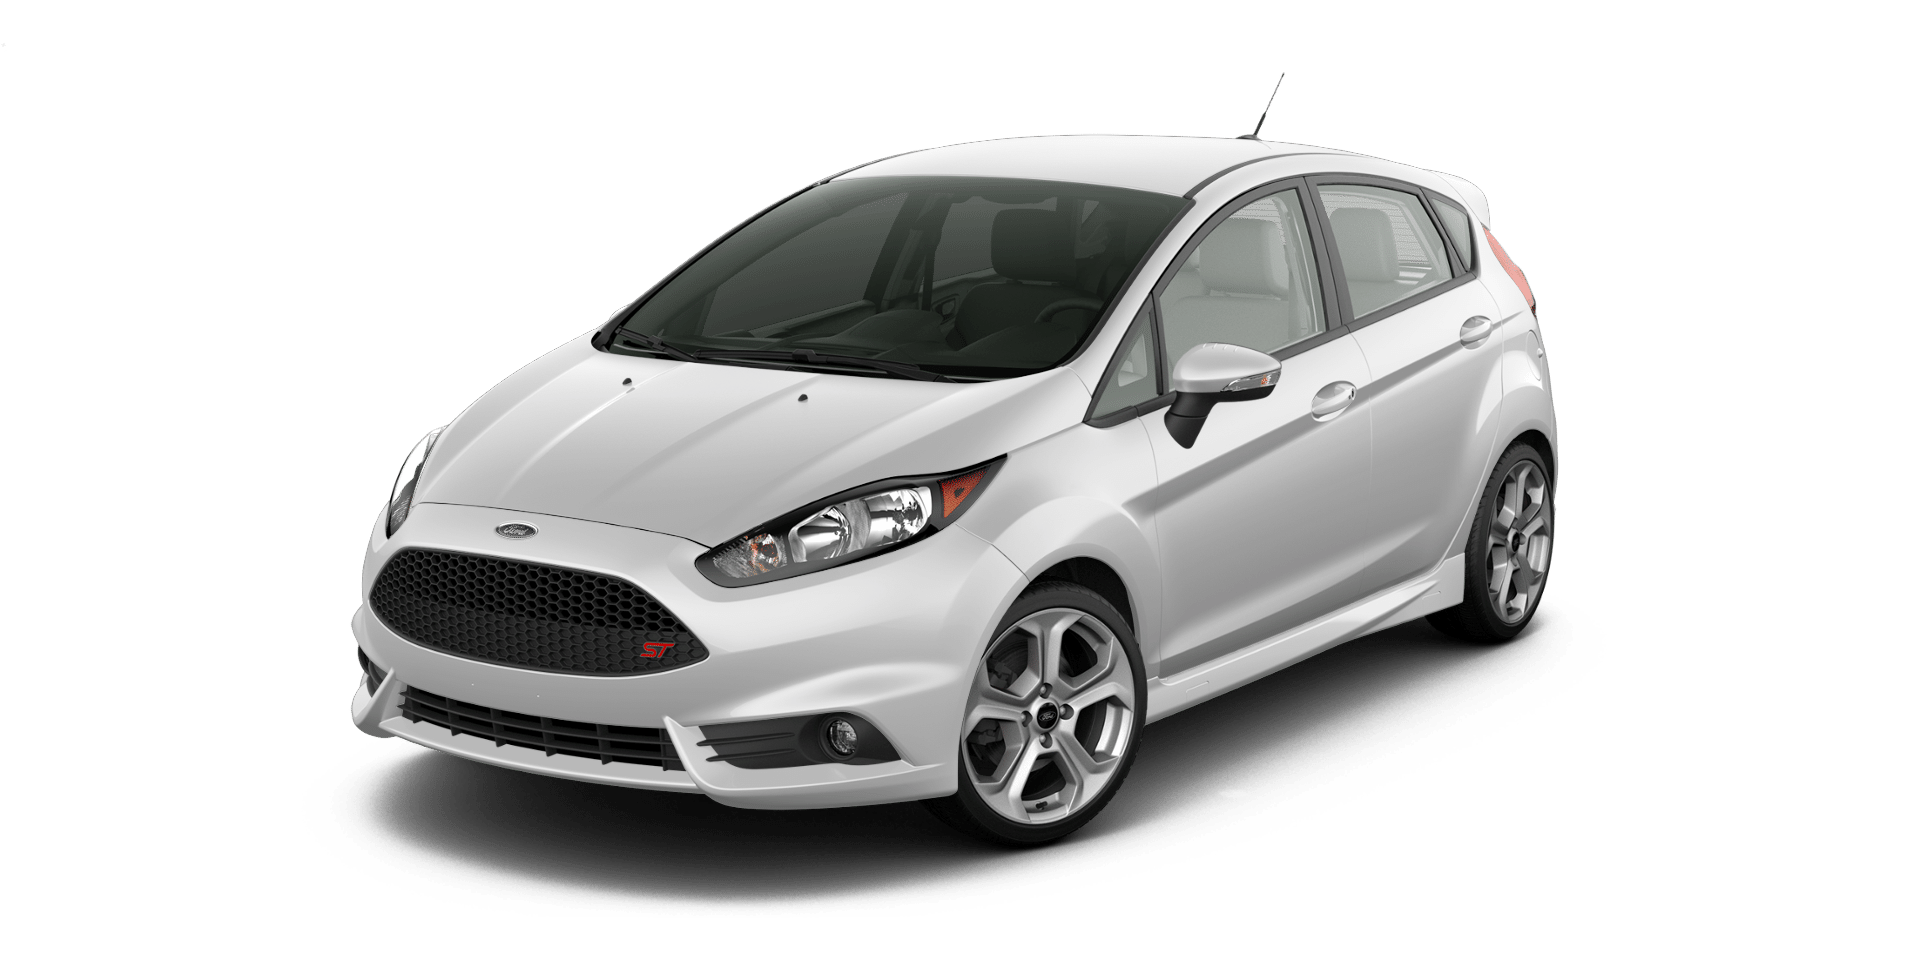 2017 Ford Fiesta Build Price Ford Fiesta Ford 2019 Ford